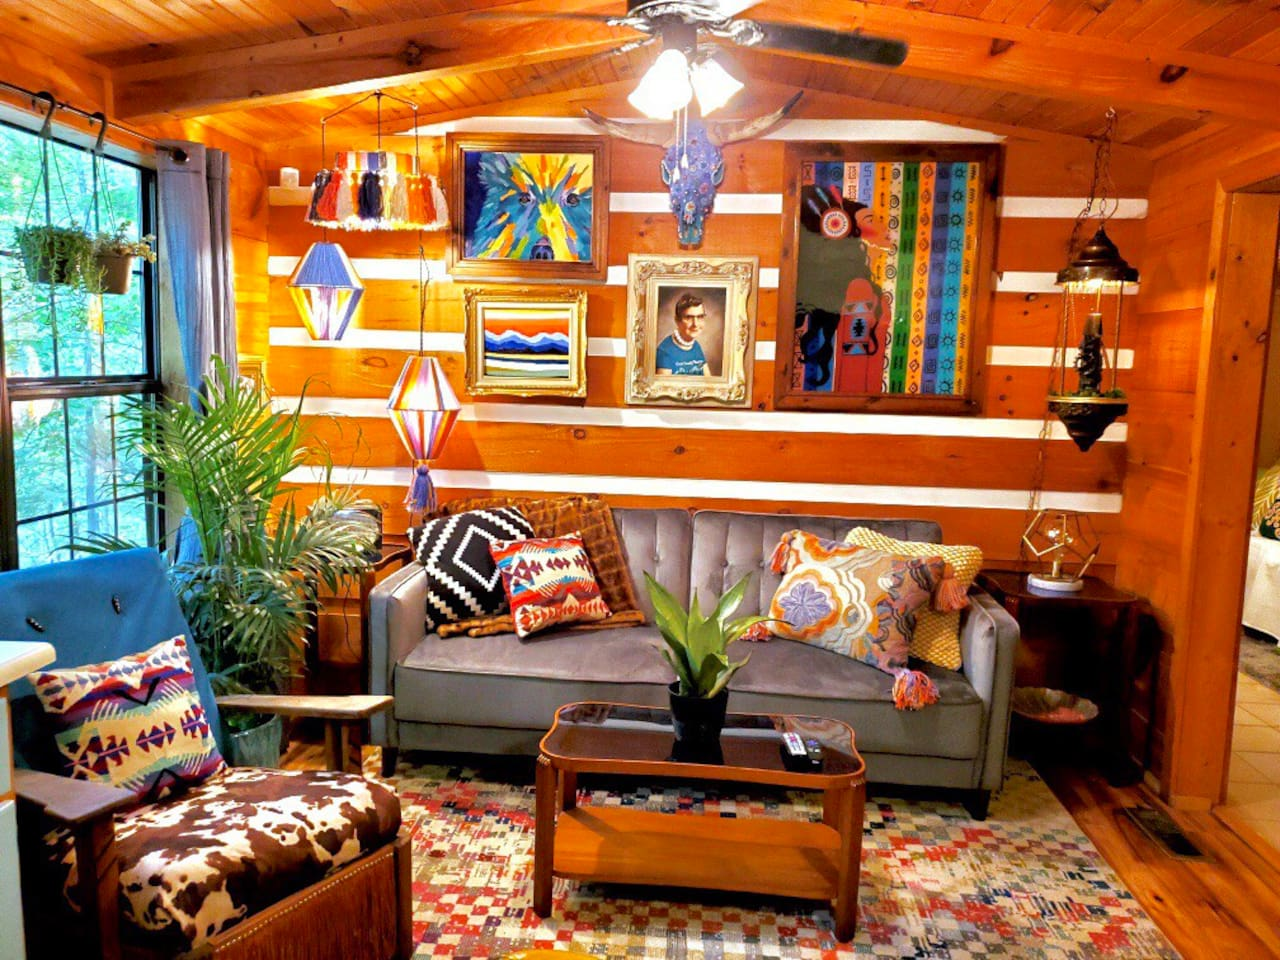 How fun is this living room?! Lots of colors, textures, antiques, and art by the owner.